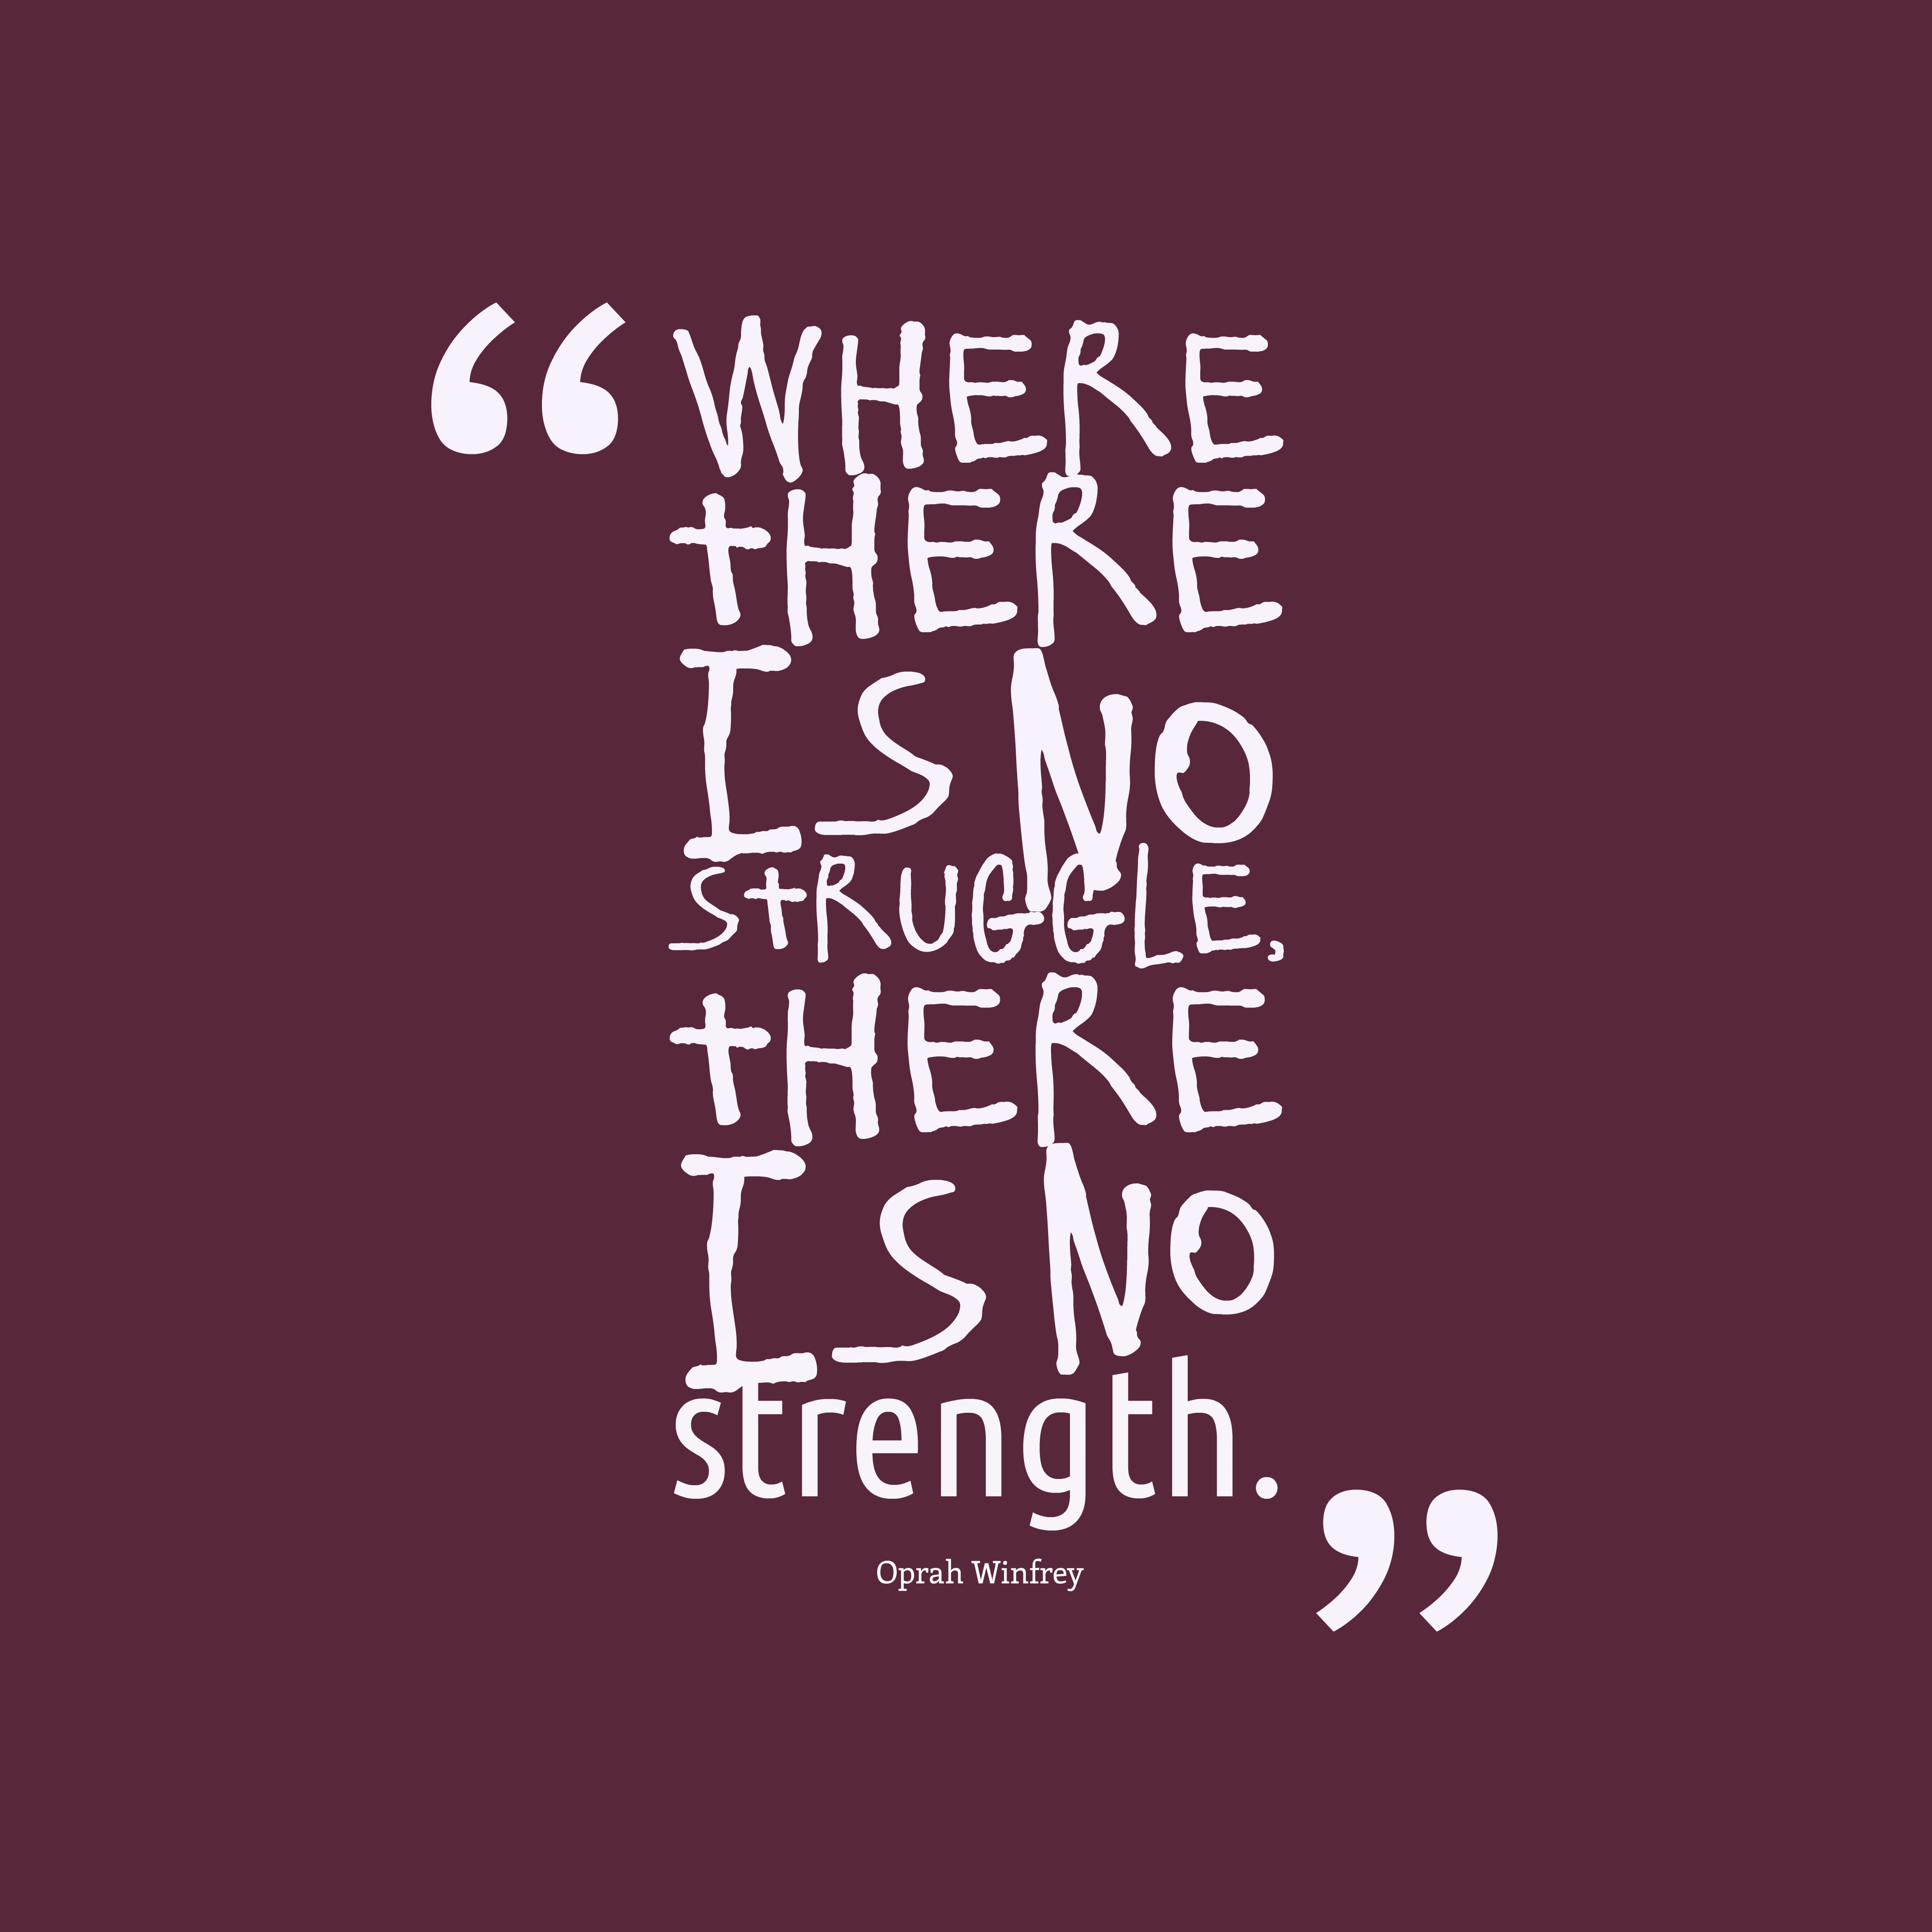 Picture » Oprah Winfrey Quote About Strenght